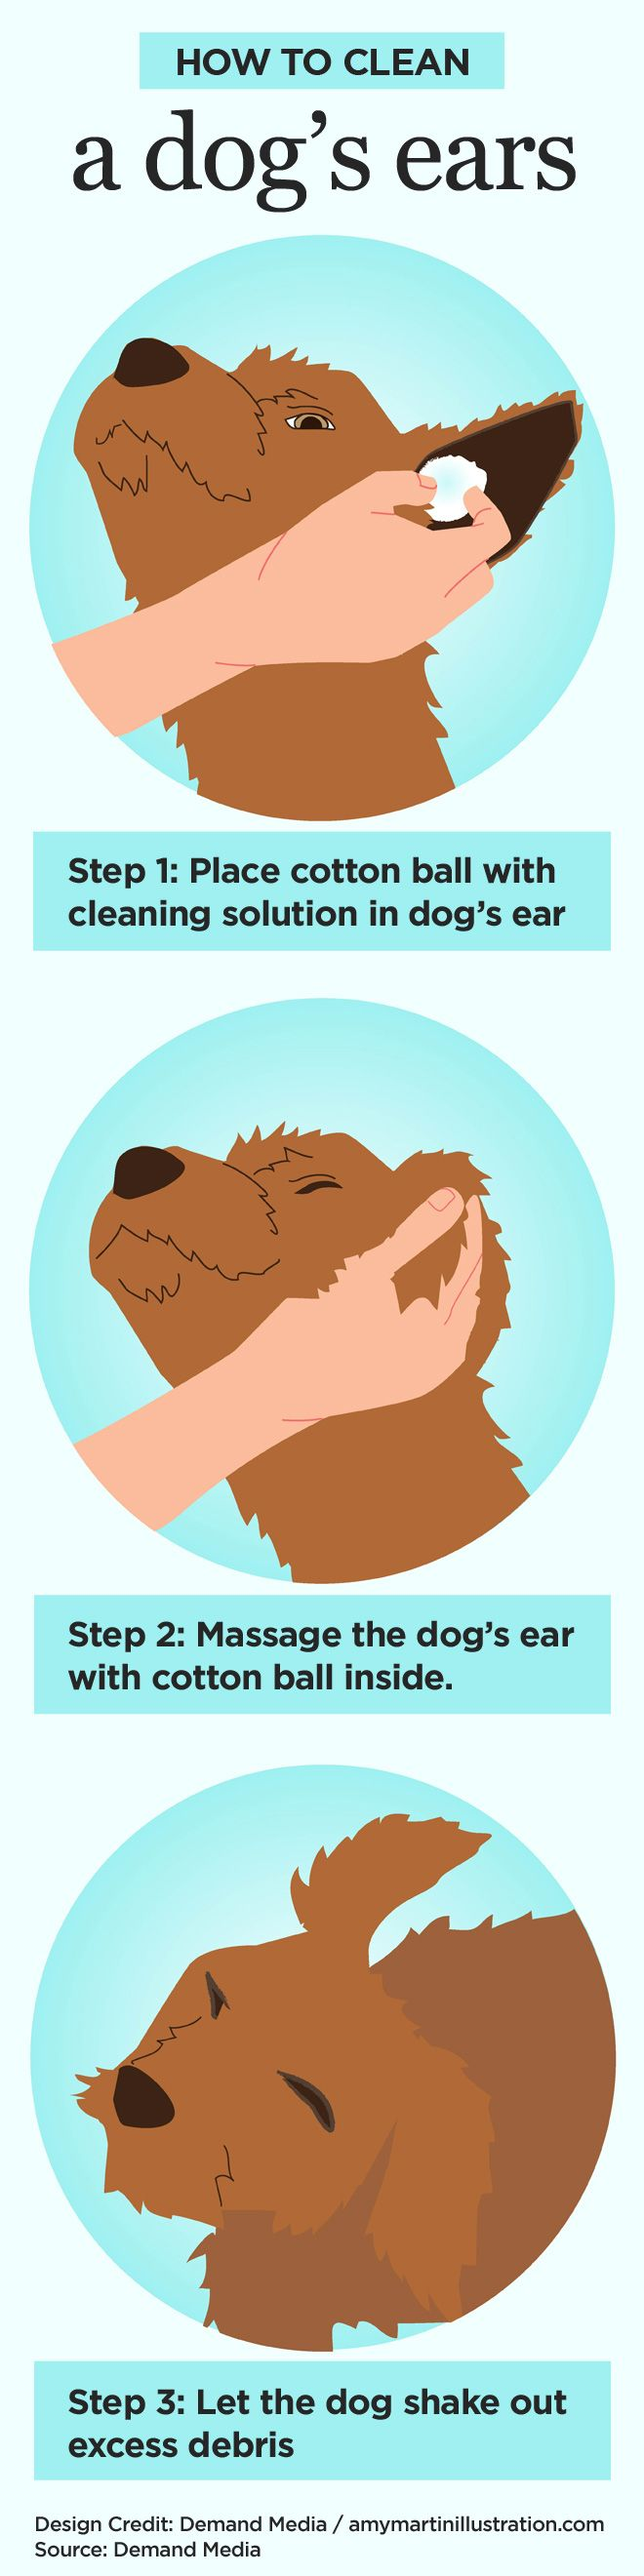 Chloramphenicol For Dogs Ear Infection